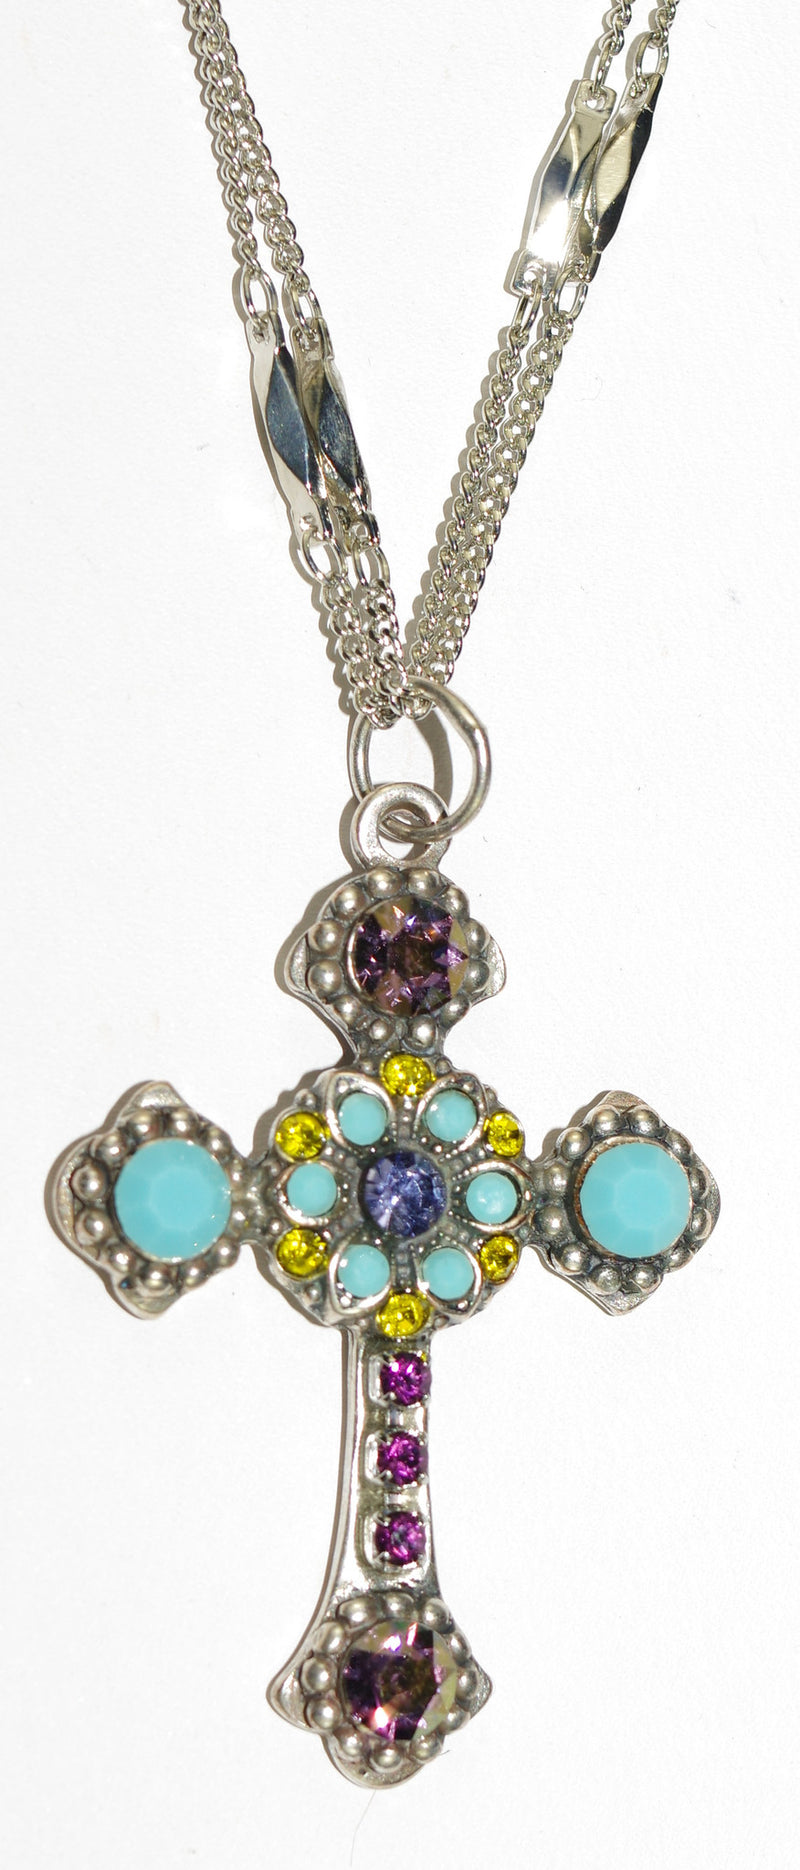 "MARIANA CROSS PENDANT HAPPINESS: turq, yellow, purple stones in silver setting, 18"" double chain"